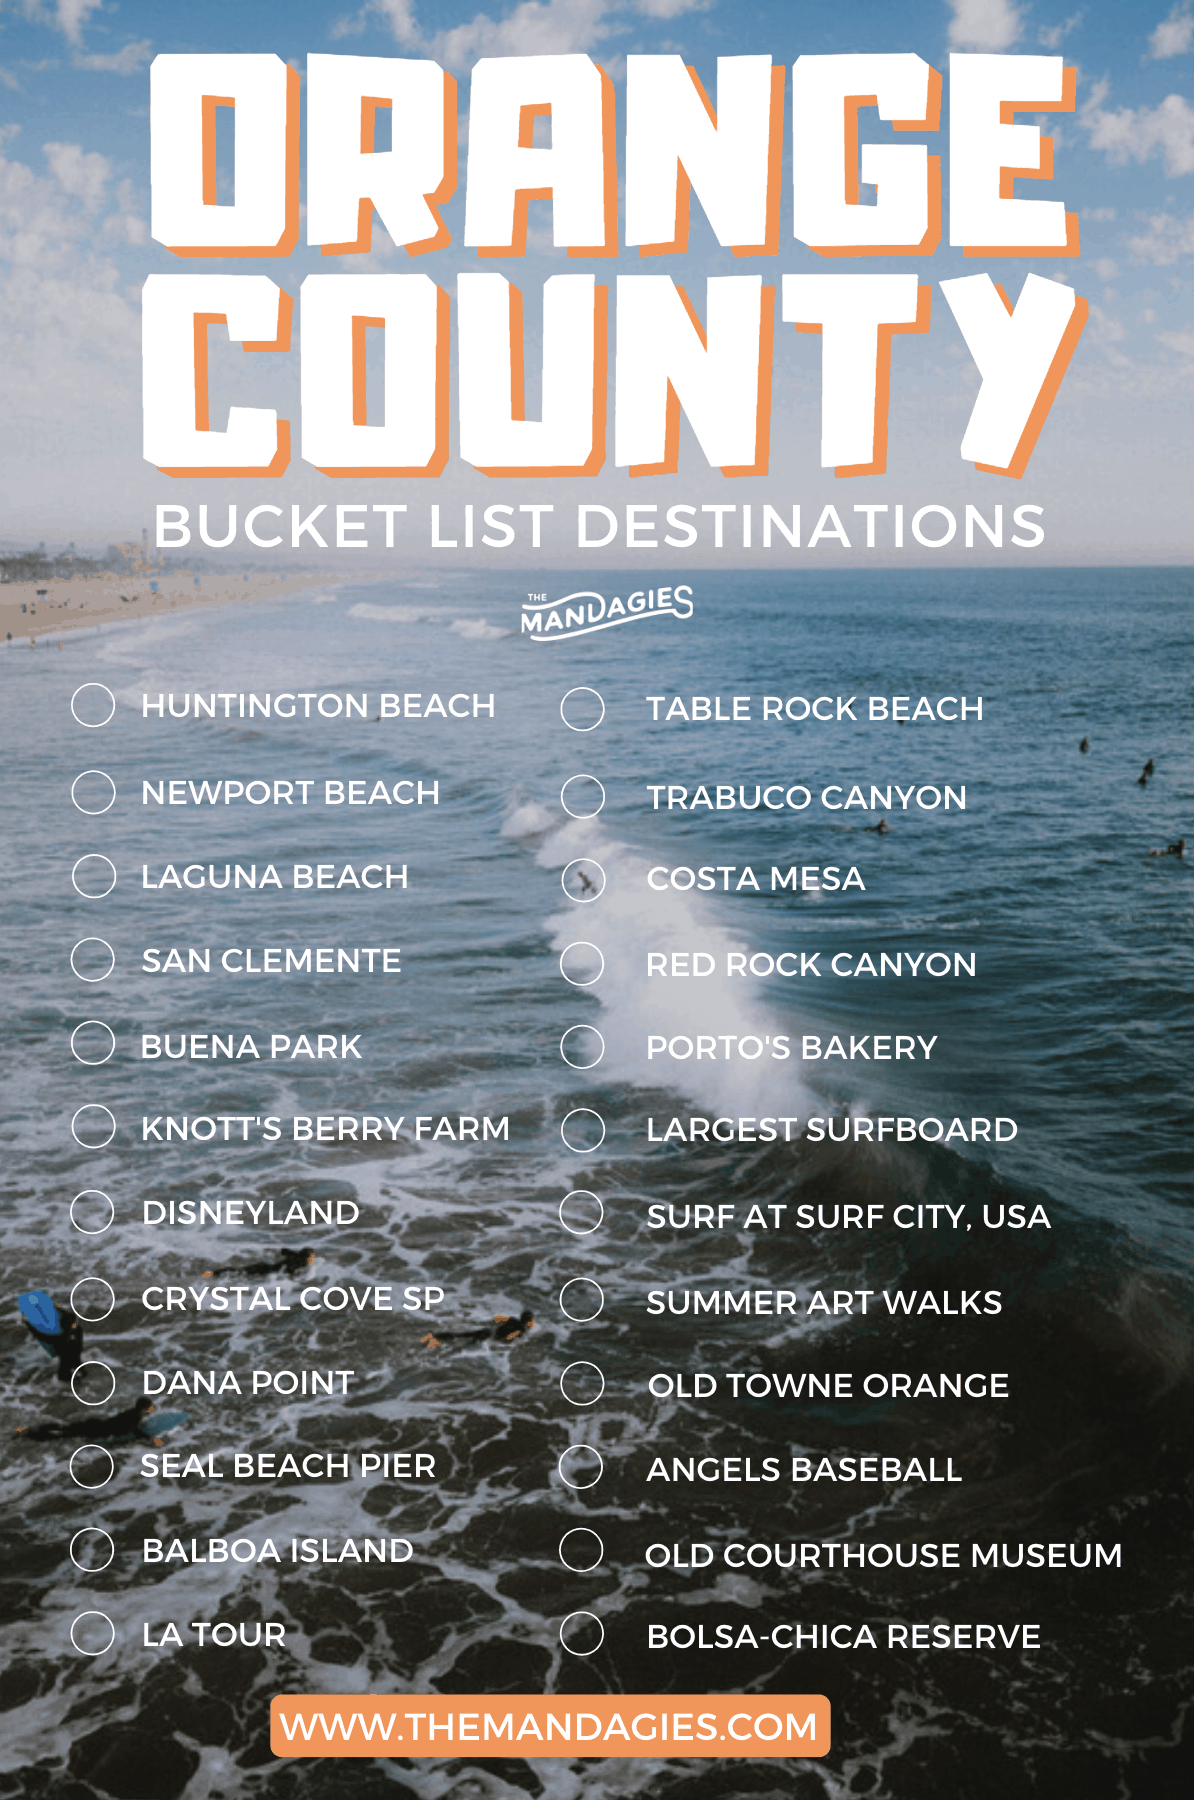 Looking for awesome things to do in Orange County? We're sharing incredible outdoor activities, hikes, beaches, and more here! Save for inspiration on places to go in Orange County for a weekend trip or your OC Bucket List! #california #orangecounty #disneyland #huntingtonbeach #surfing #sunrise #travel #westernUSA #buckelist #travelinspiration #surfcityusa #lagunabeach #USA #TheOC